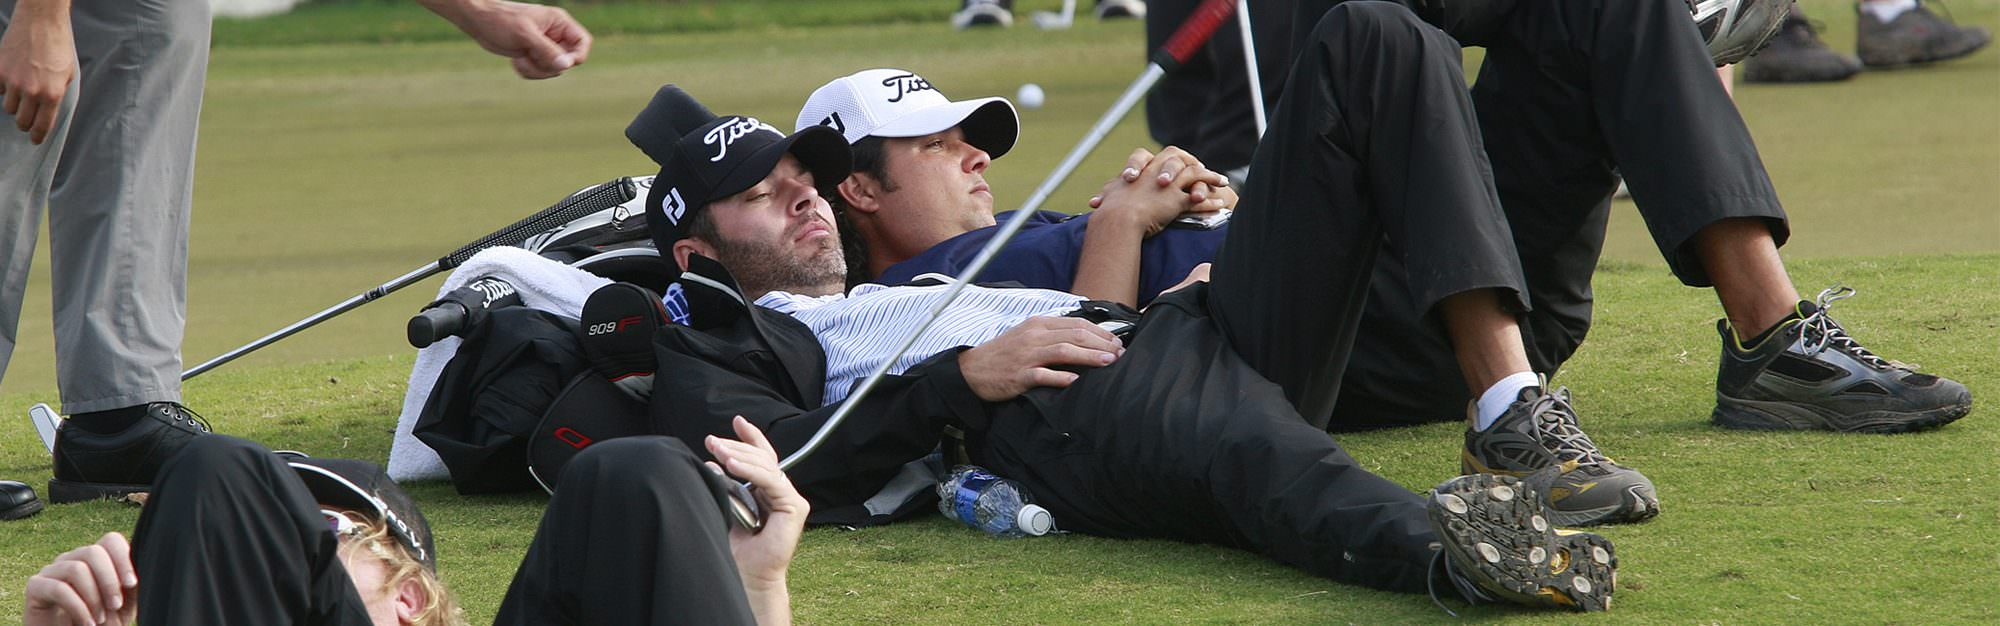 Is a lack of sleep affecting your golf?